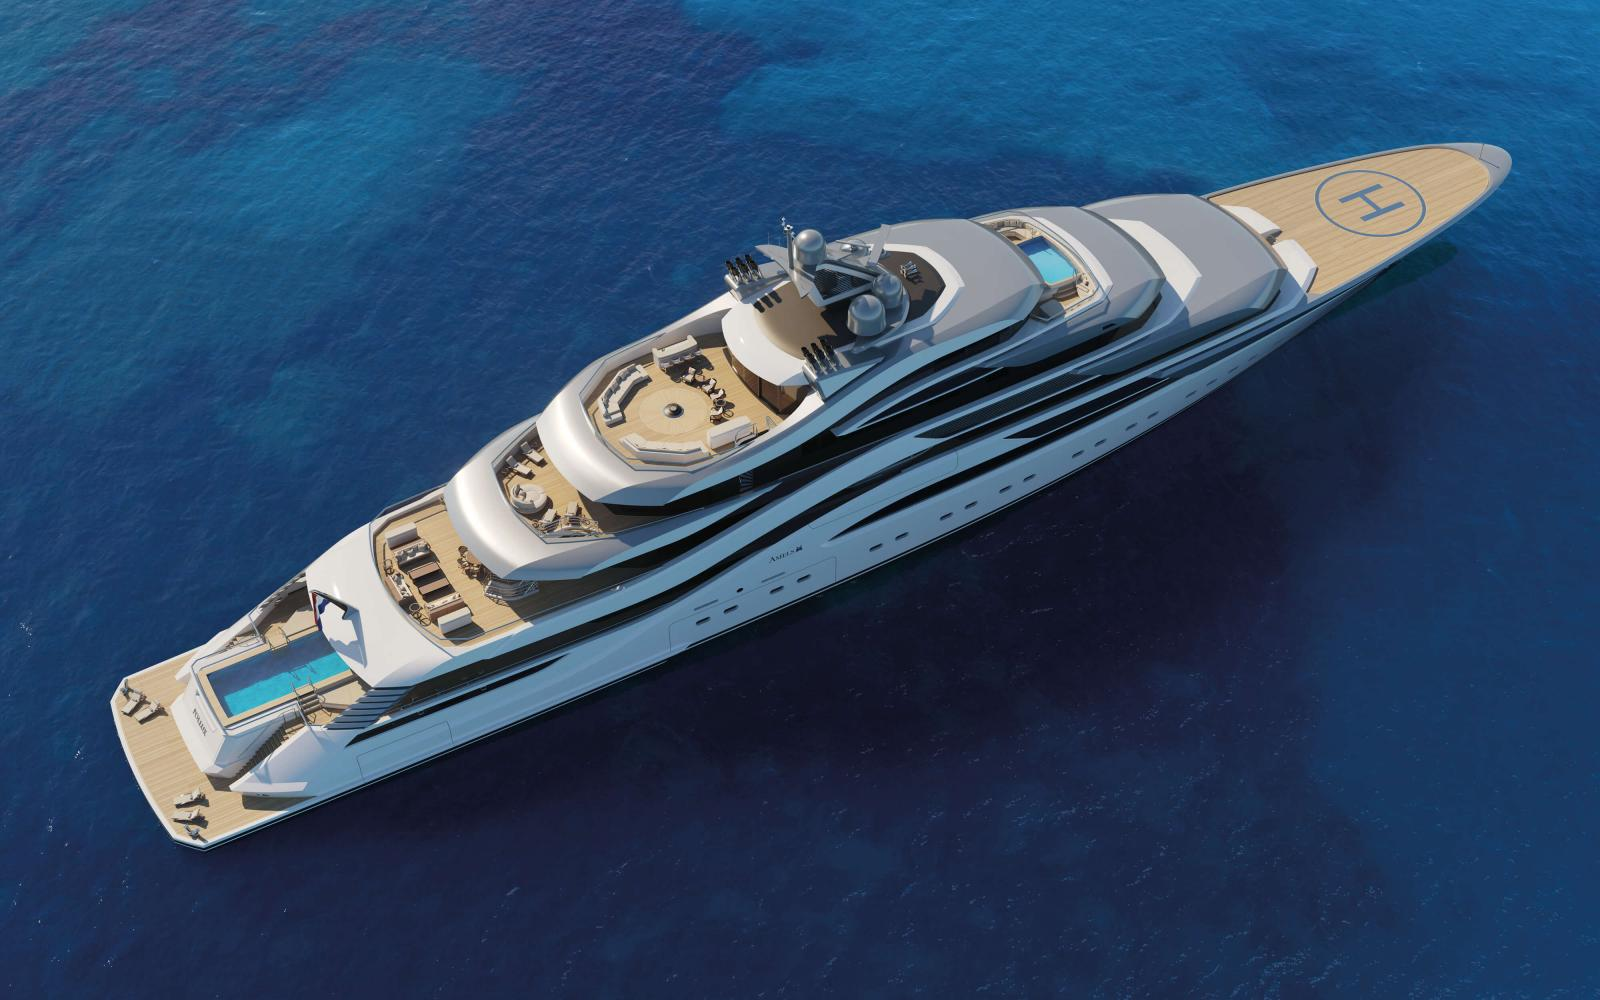 Amels 111 Yacht Pollux - Top View